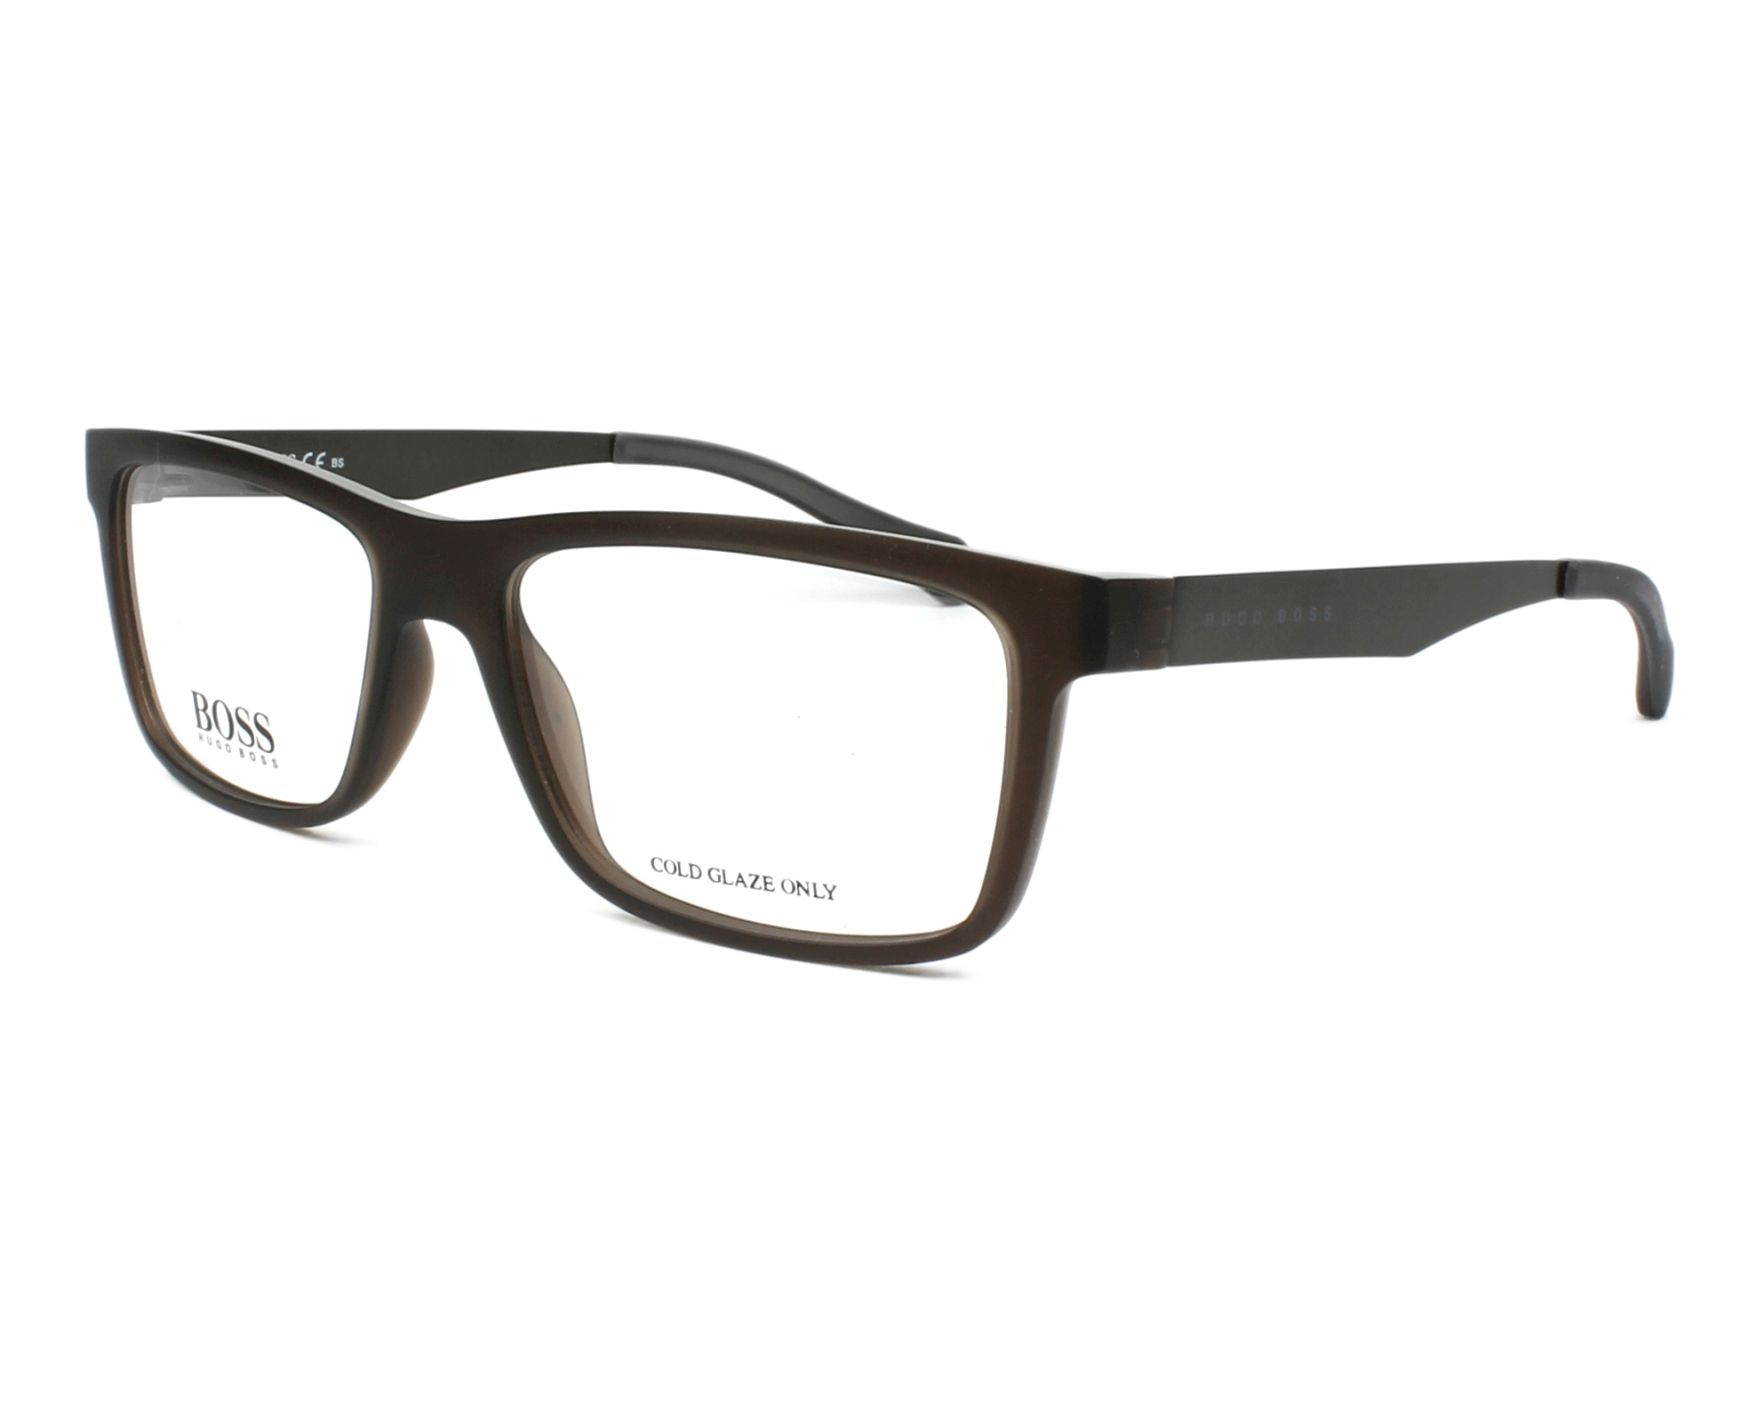 eyeglasses Hugo Boss BOSS-0870 05A 54-17 Brown Gun profile view 49c876164660